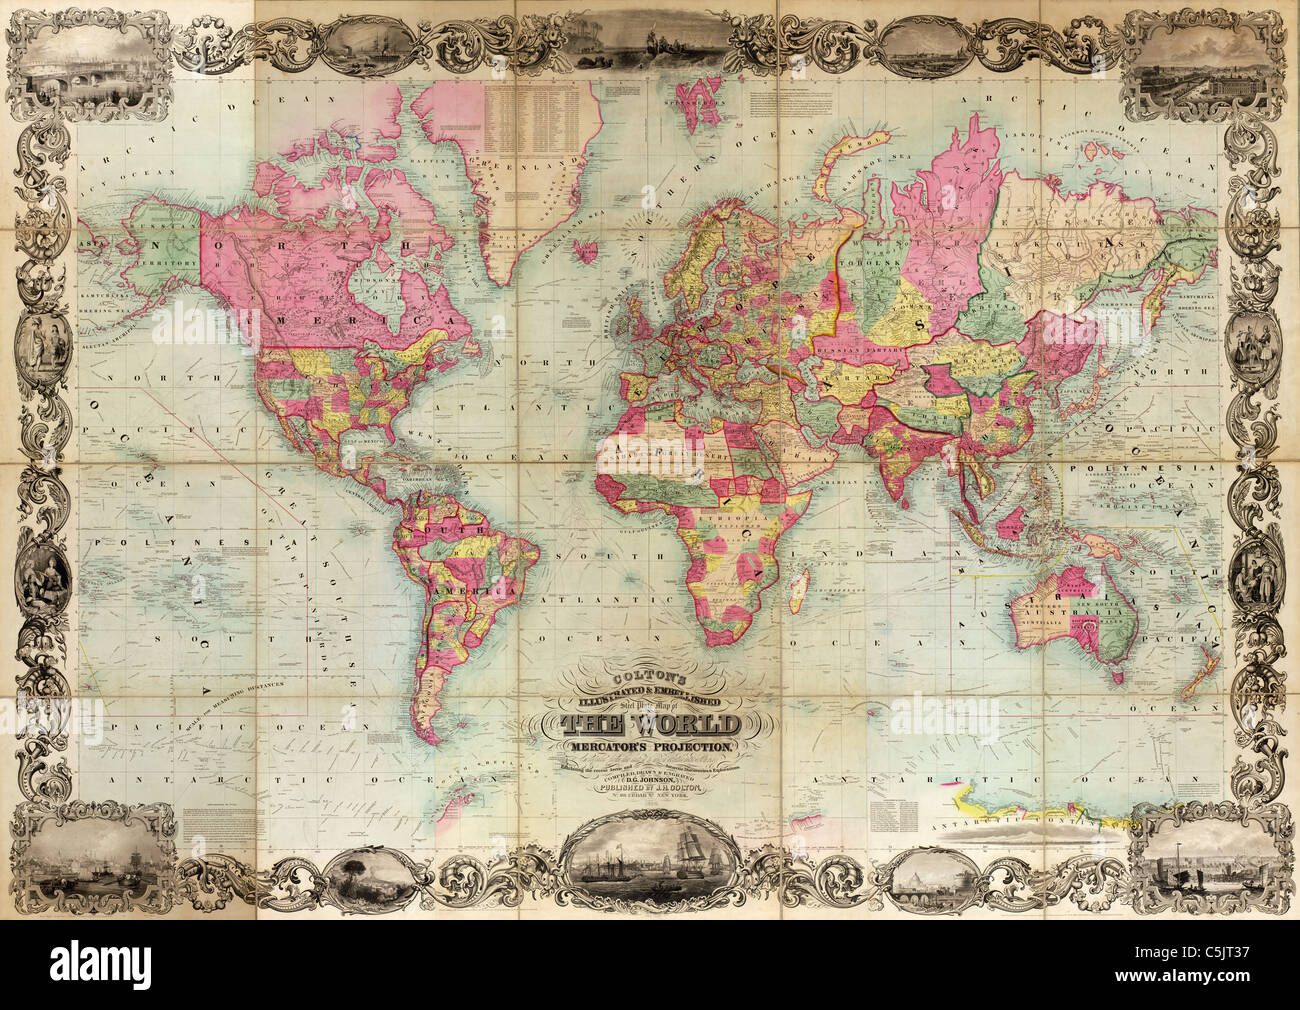 Colton's illustrated & embellished steel plate map of the world on Mercator's projection - Antique World Map by Stock Photo